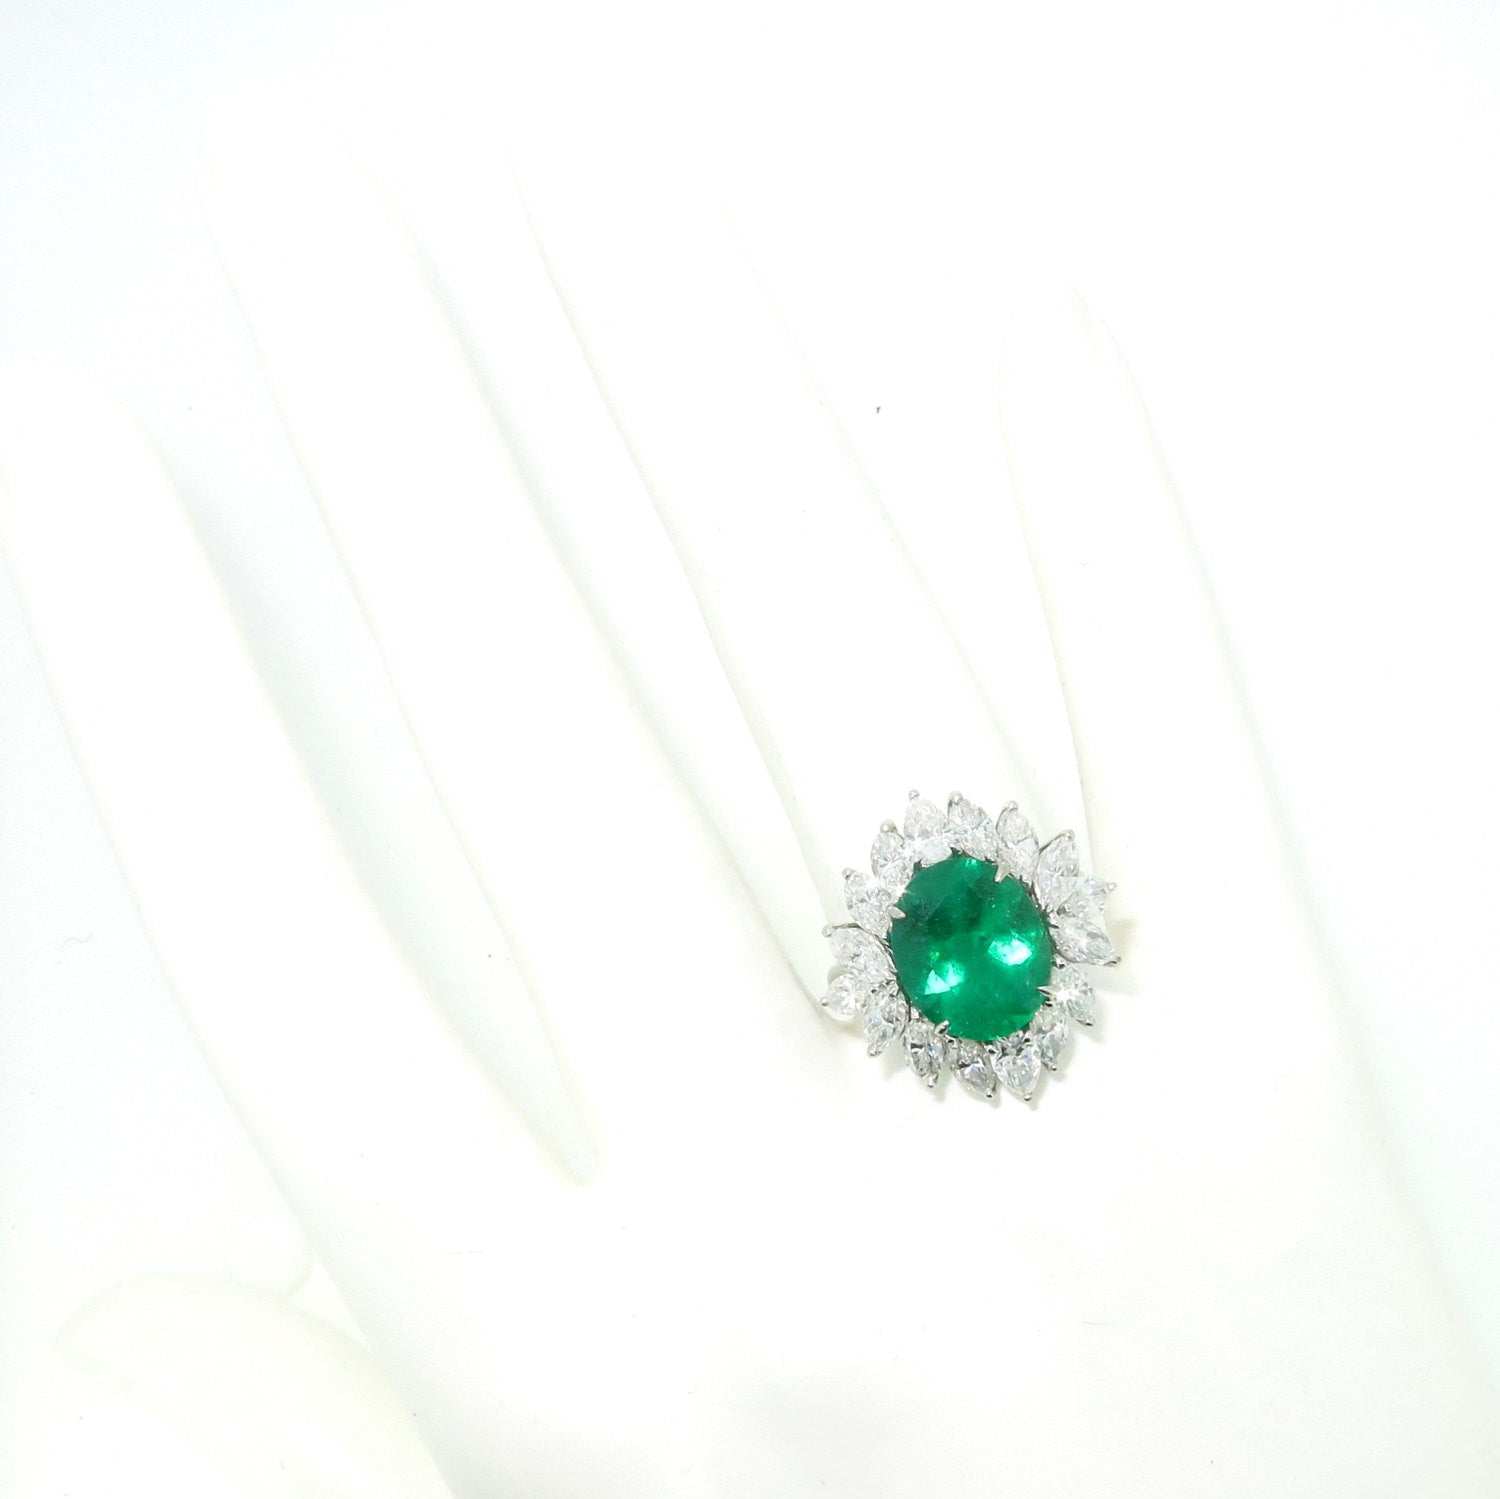 Emerald & Diamond Engagement Ring, Gemstone Engagement, Alternative, Anniversary Ring, Cocktail Ring